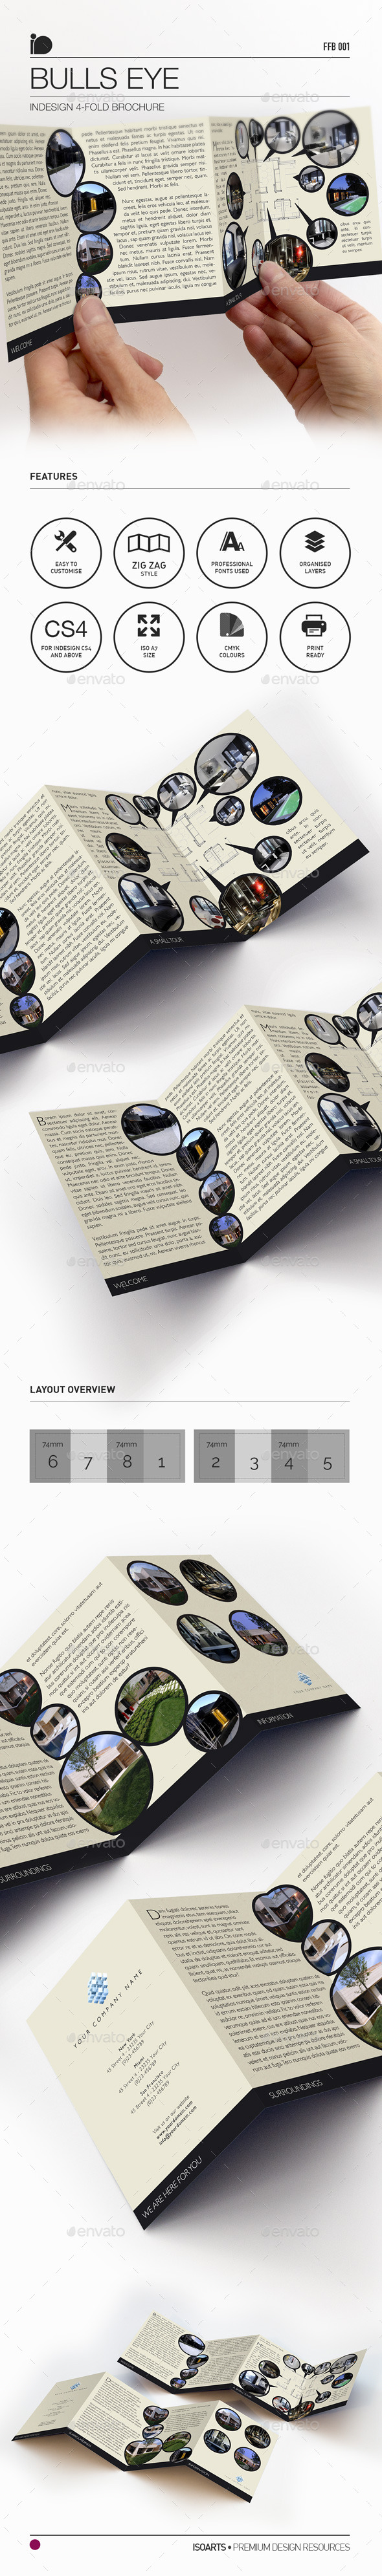 4-Fold Brochure • Bulls Eye - Corporate Brochures